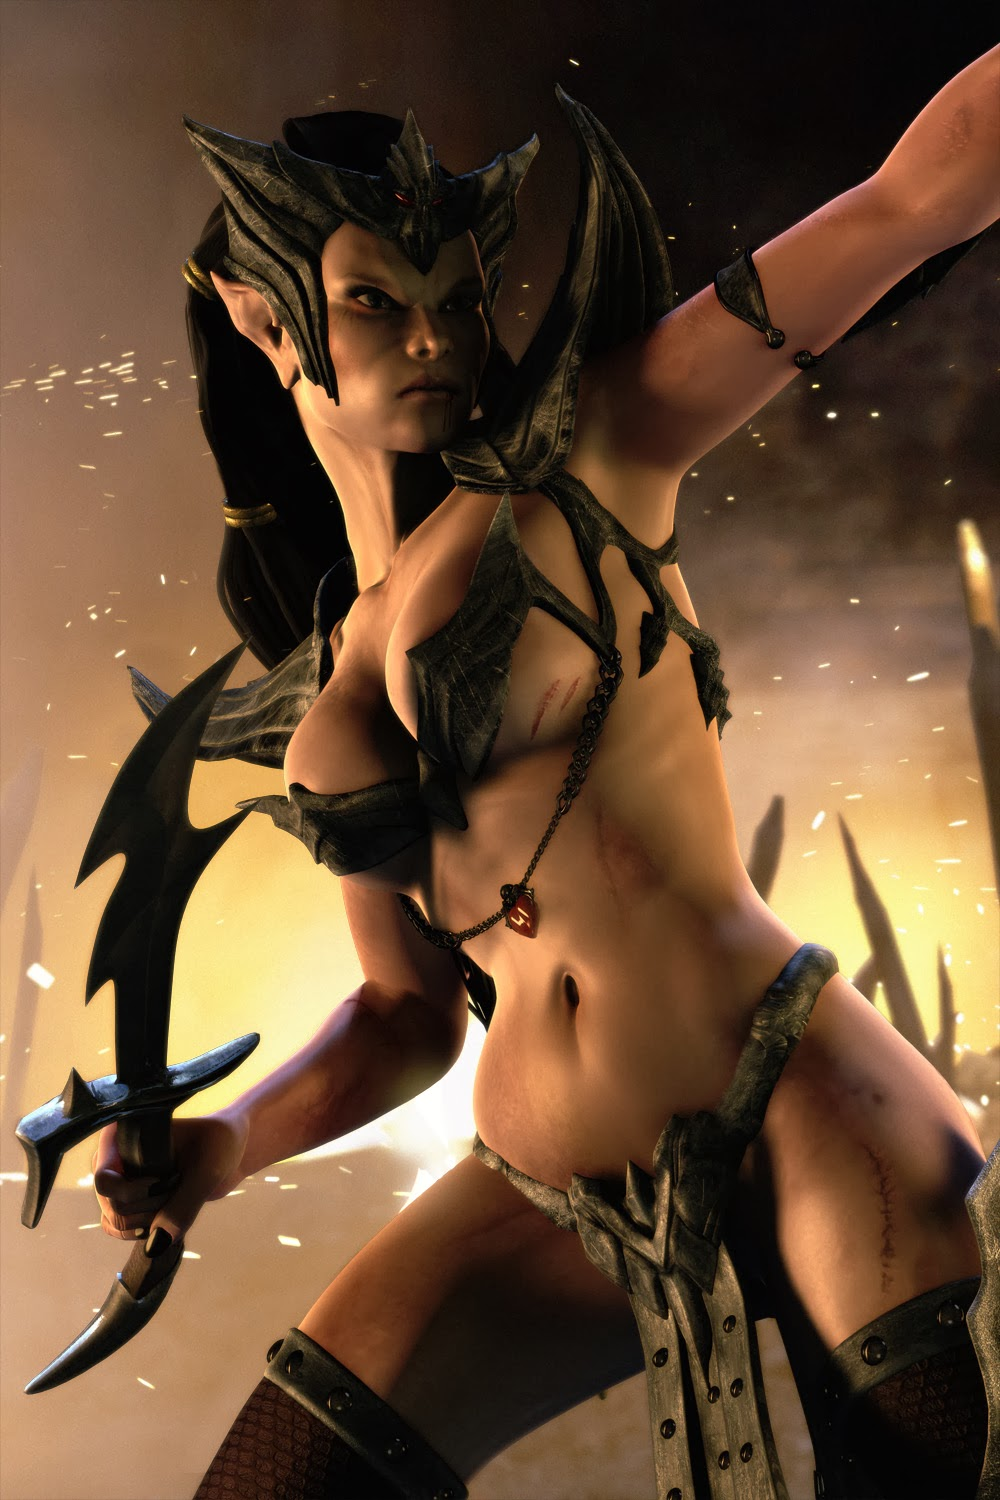 Female dark fantasy naked images